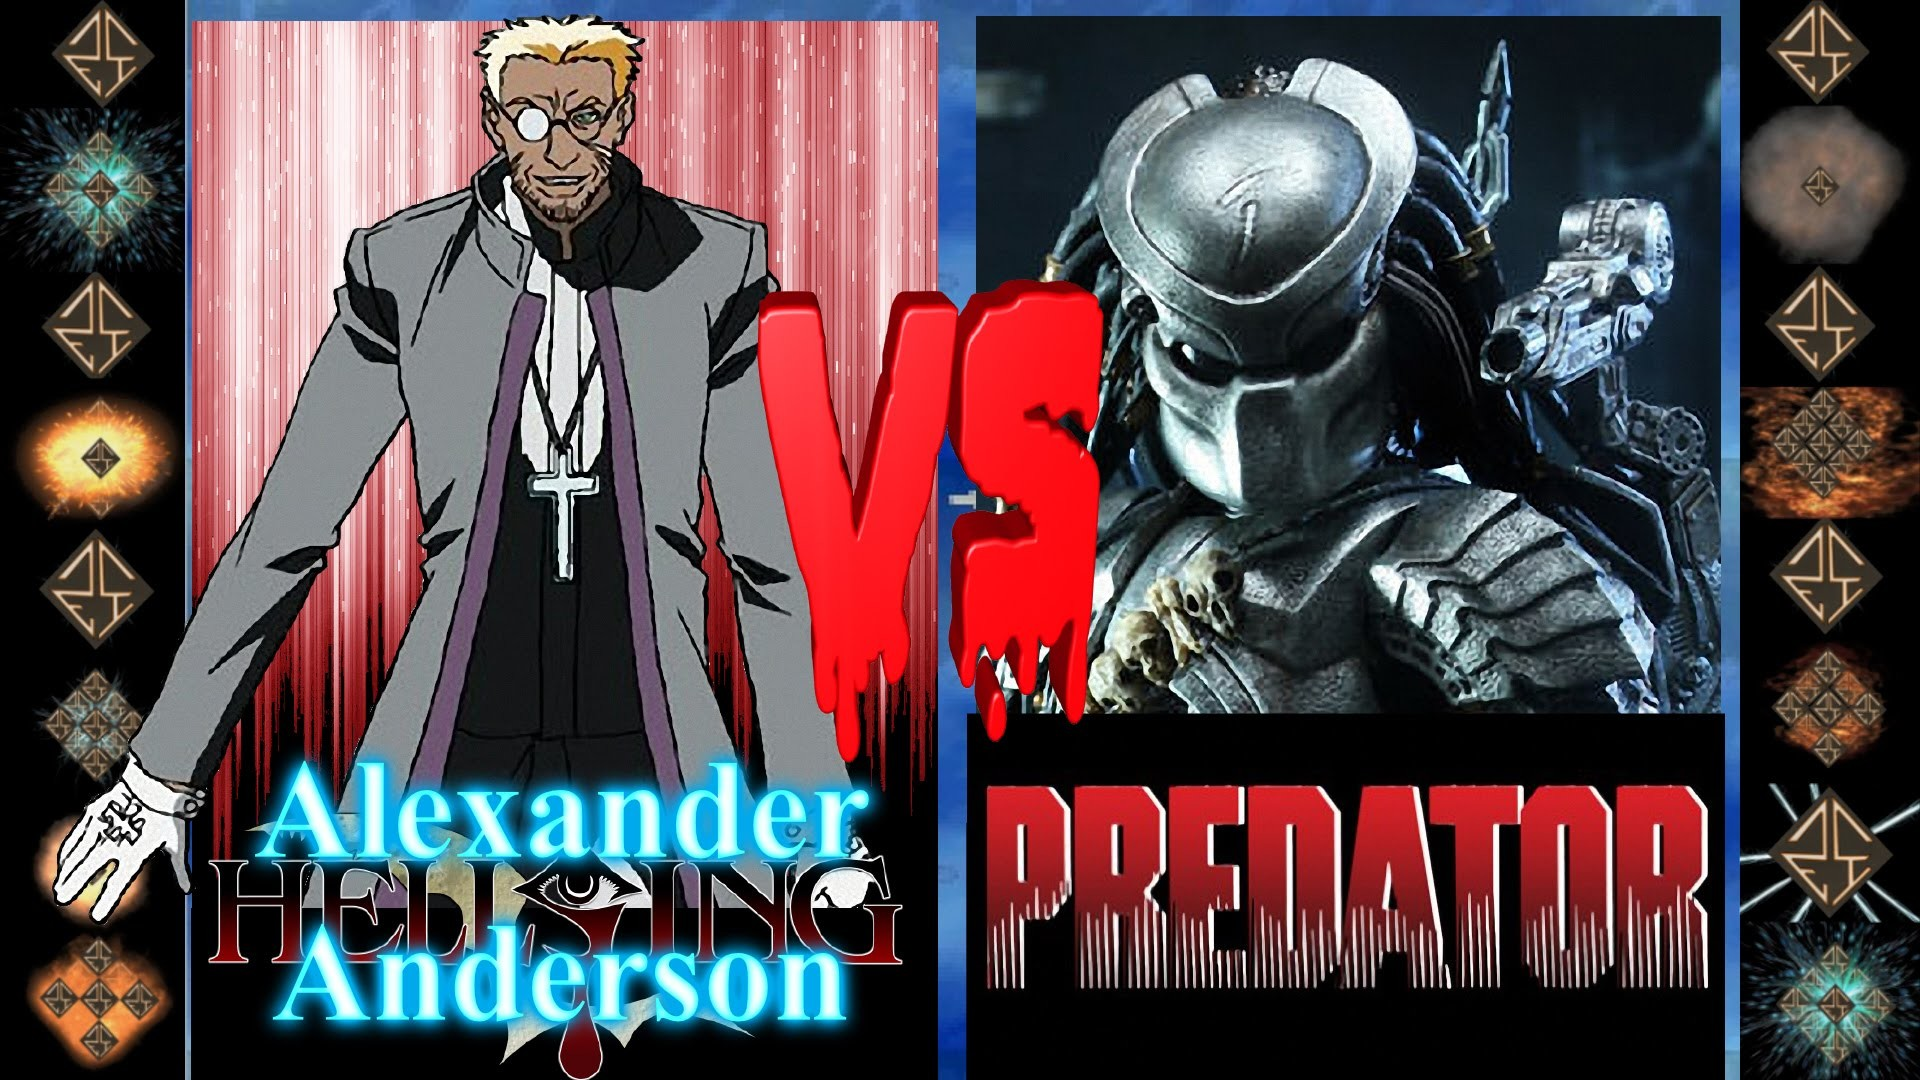 Res: 1920x1080, Alexander Anderson (Hellsing Ultimate) vs the Predator (Dark Horse Comics)  Ultimate Mugen Fight - YouTube